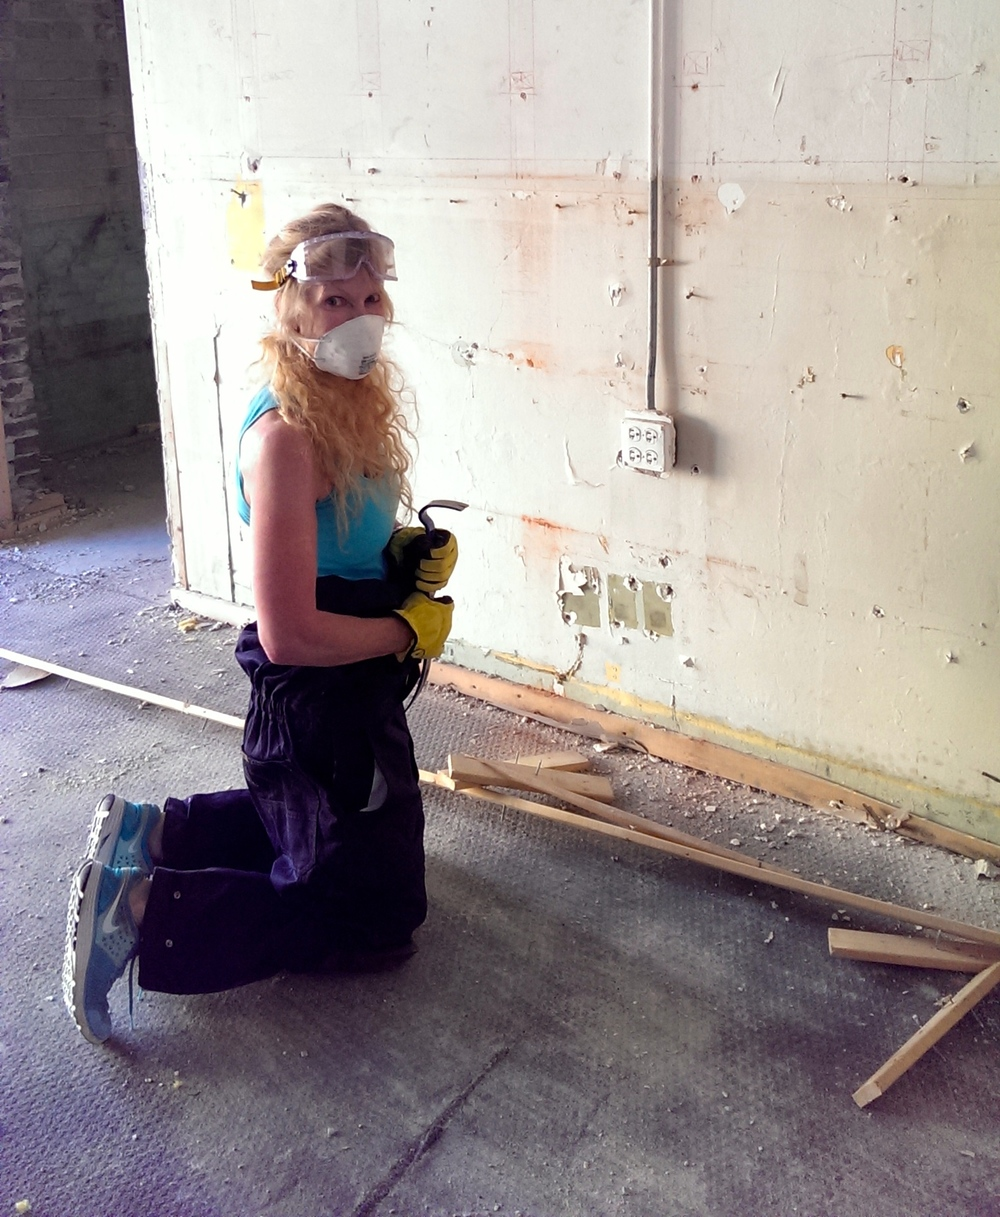 And Laura - looking both safe and cute while ripping off old baseboards - not an easy task.